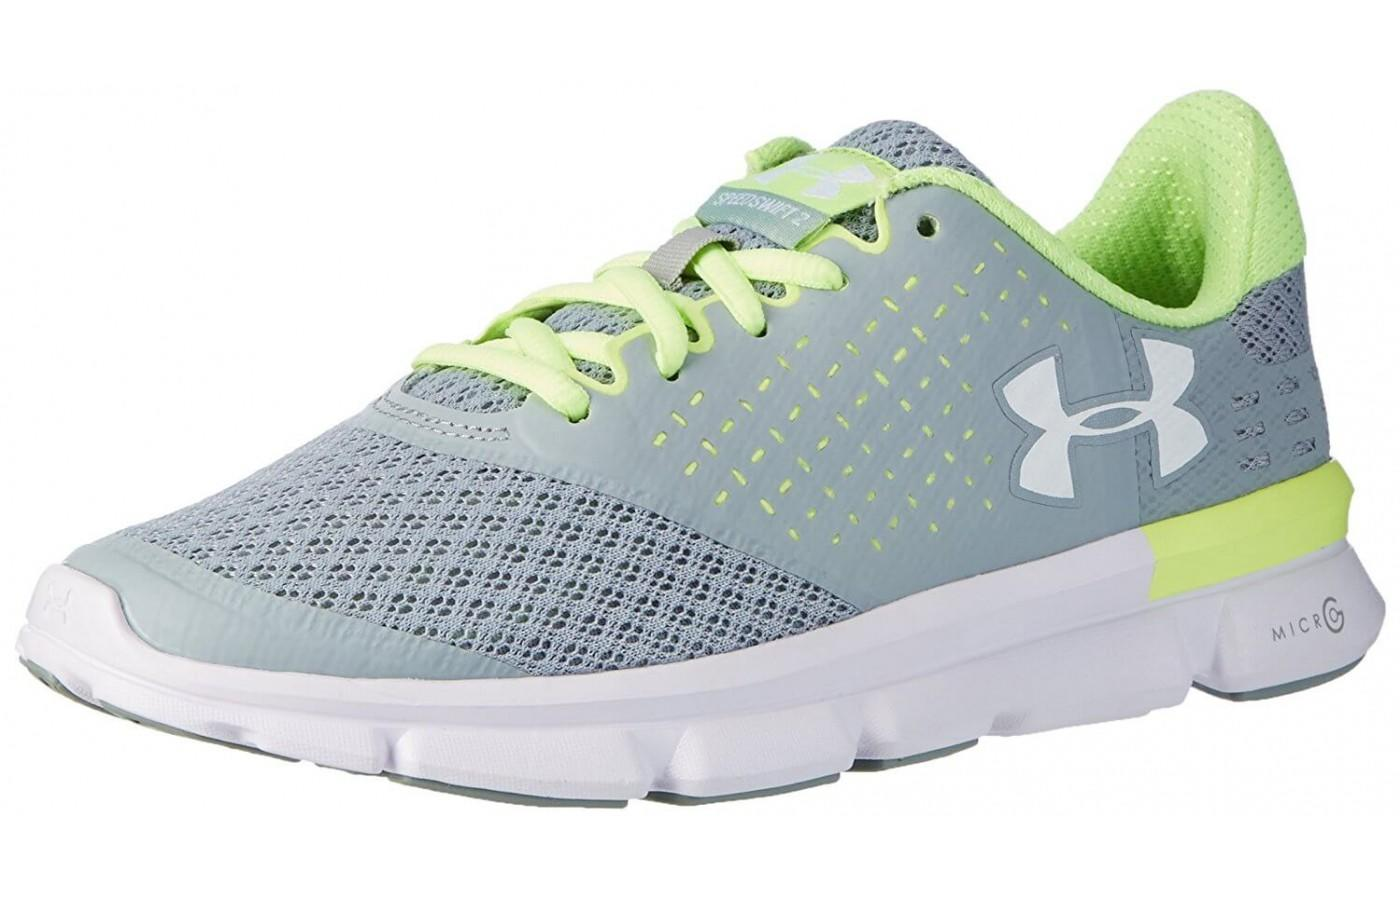 Under Armour Speed Swift 2 in pastel colorway